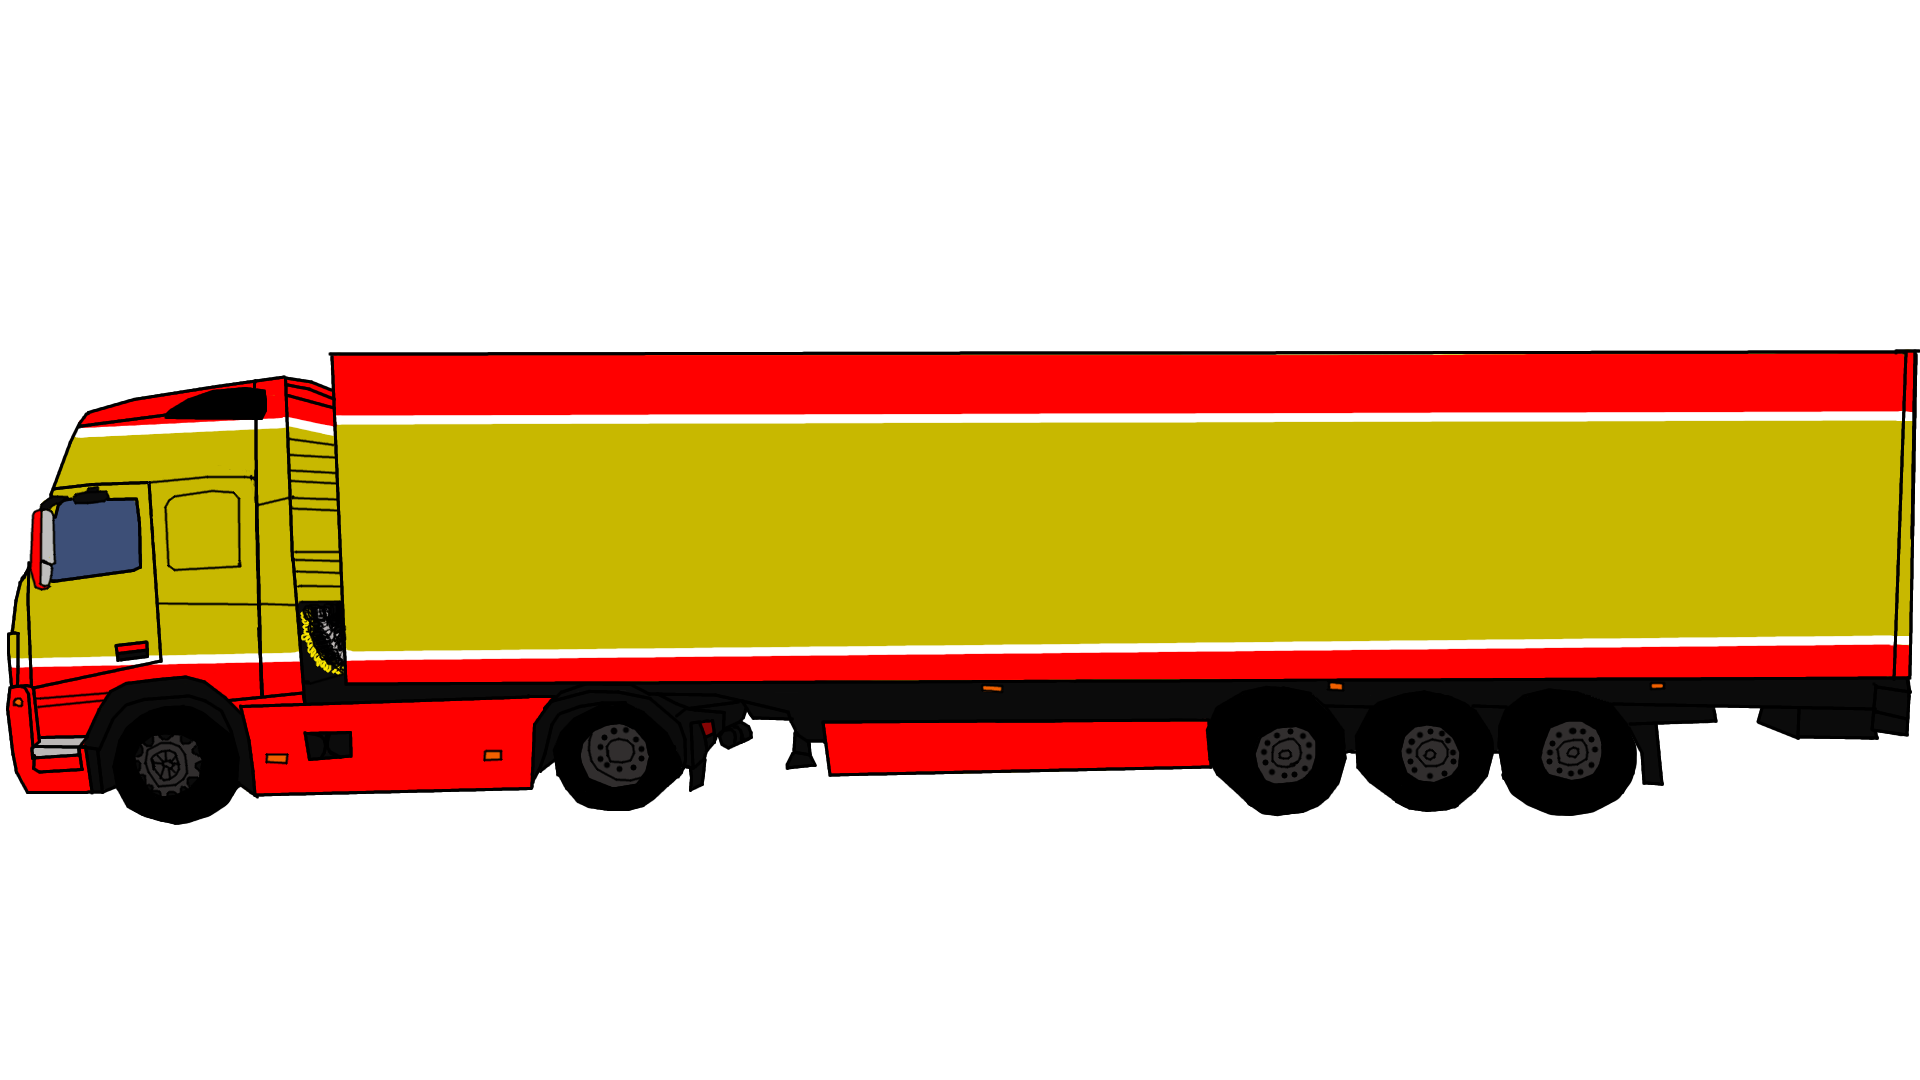 1920x1080 semi truck side view png clipart